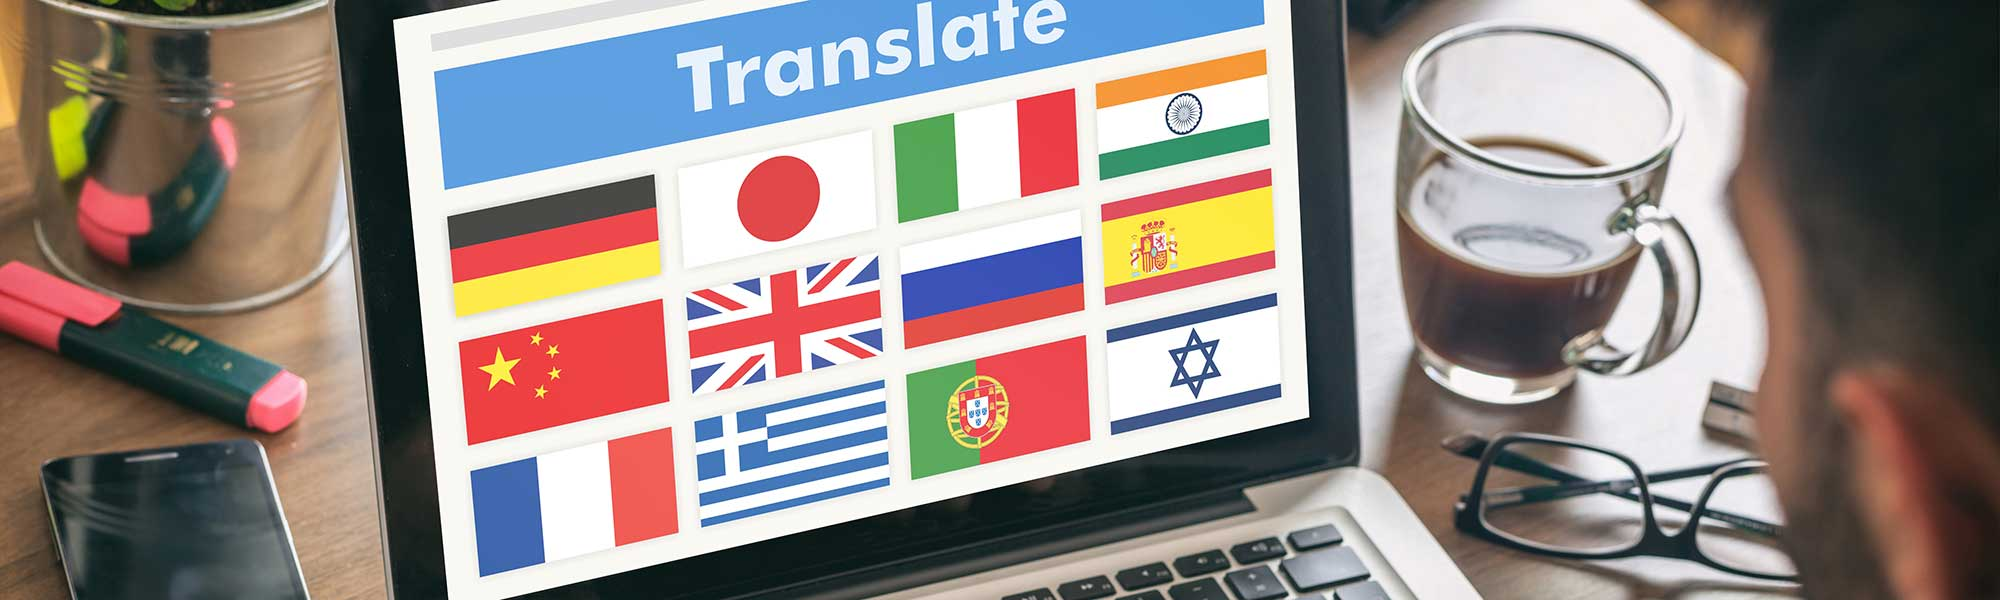 Online language translation, man working